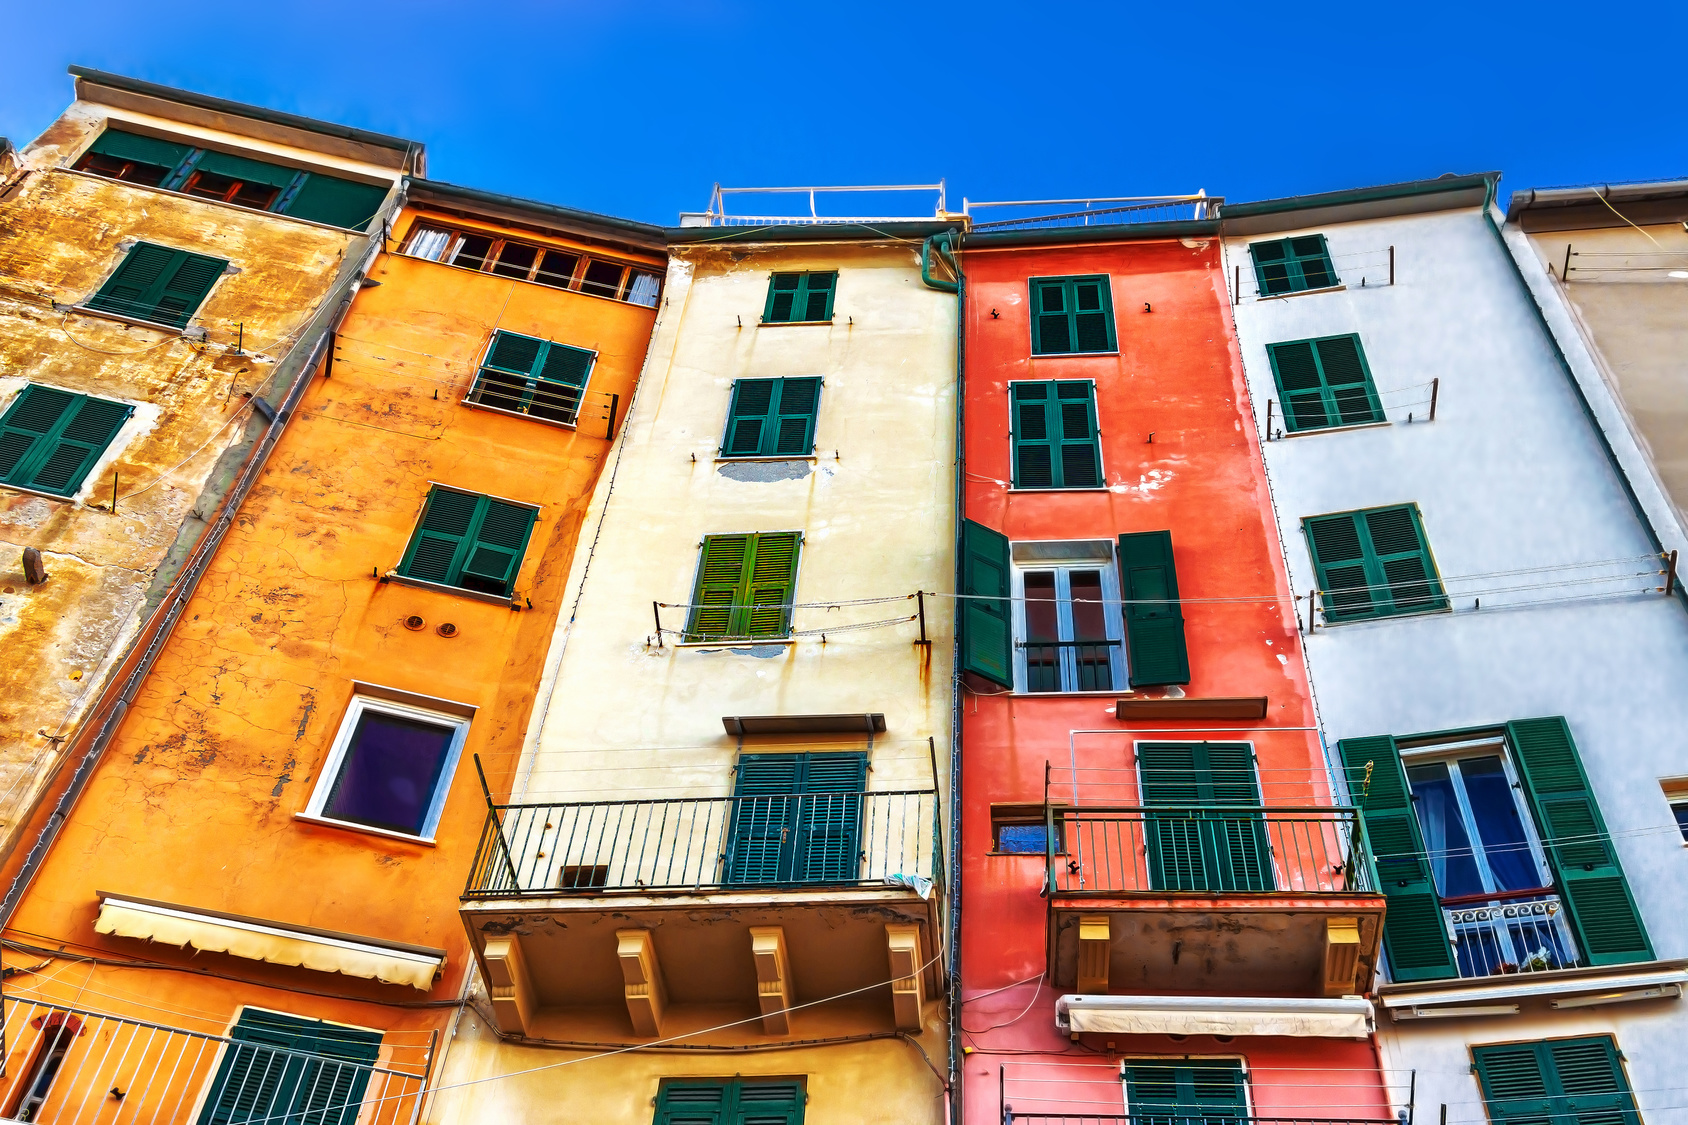 Old houses in Porto Venere, Liguria, Italy. Porto Venere architecture. Portovenere colorful houses.